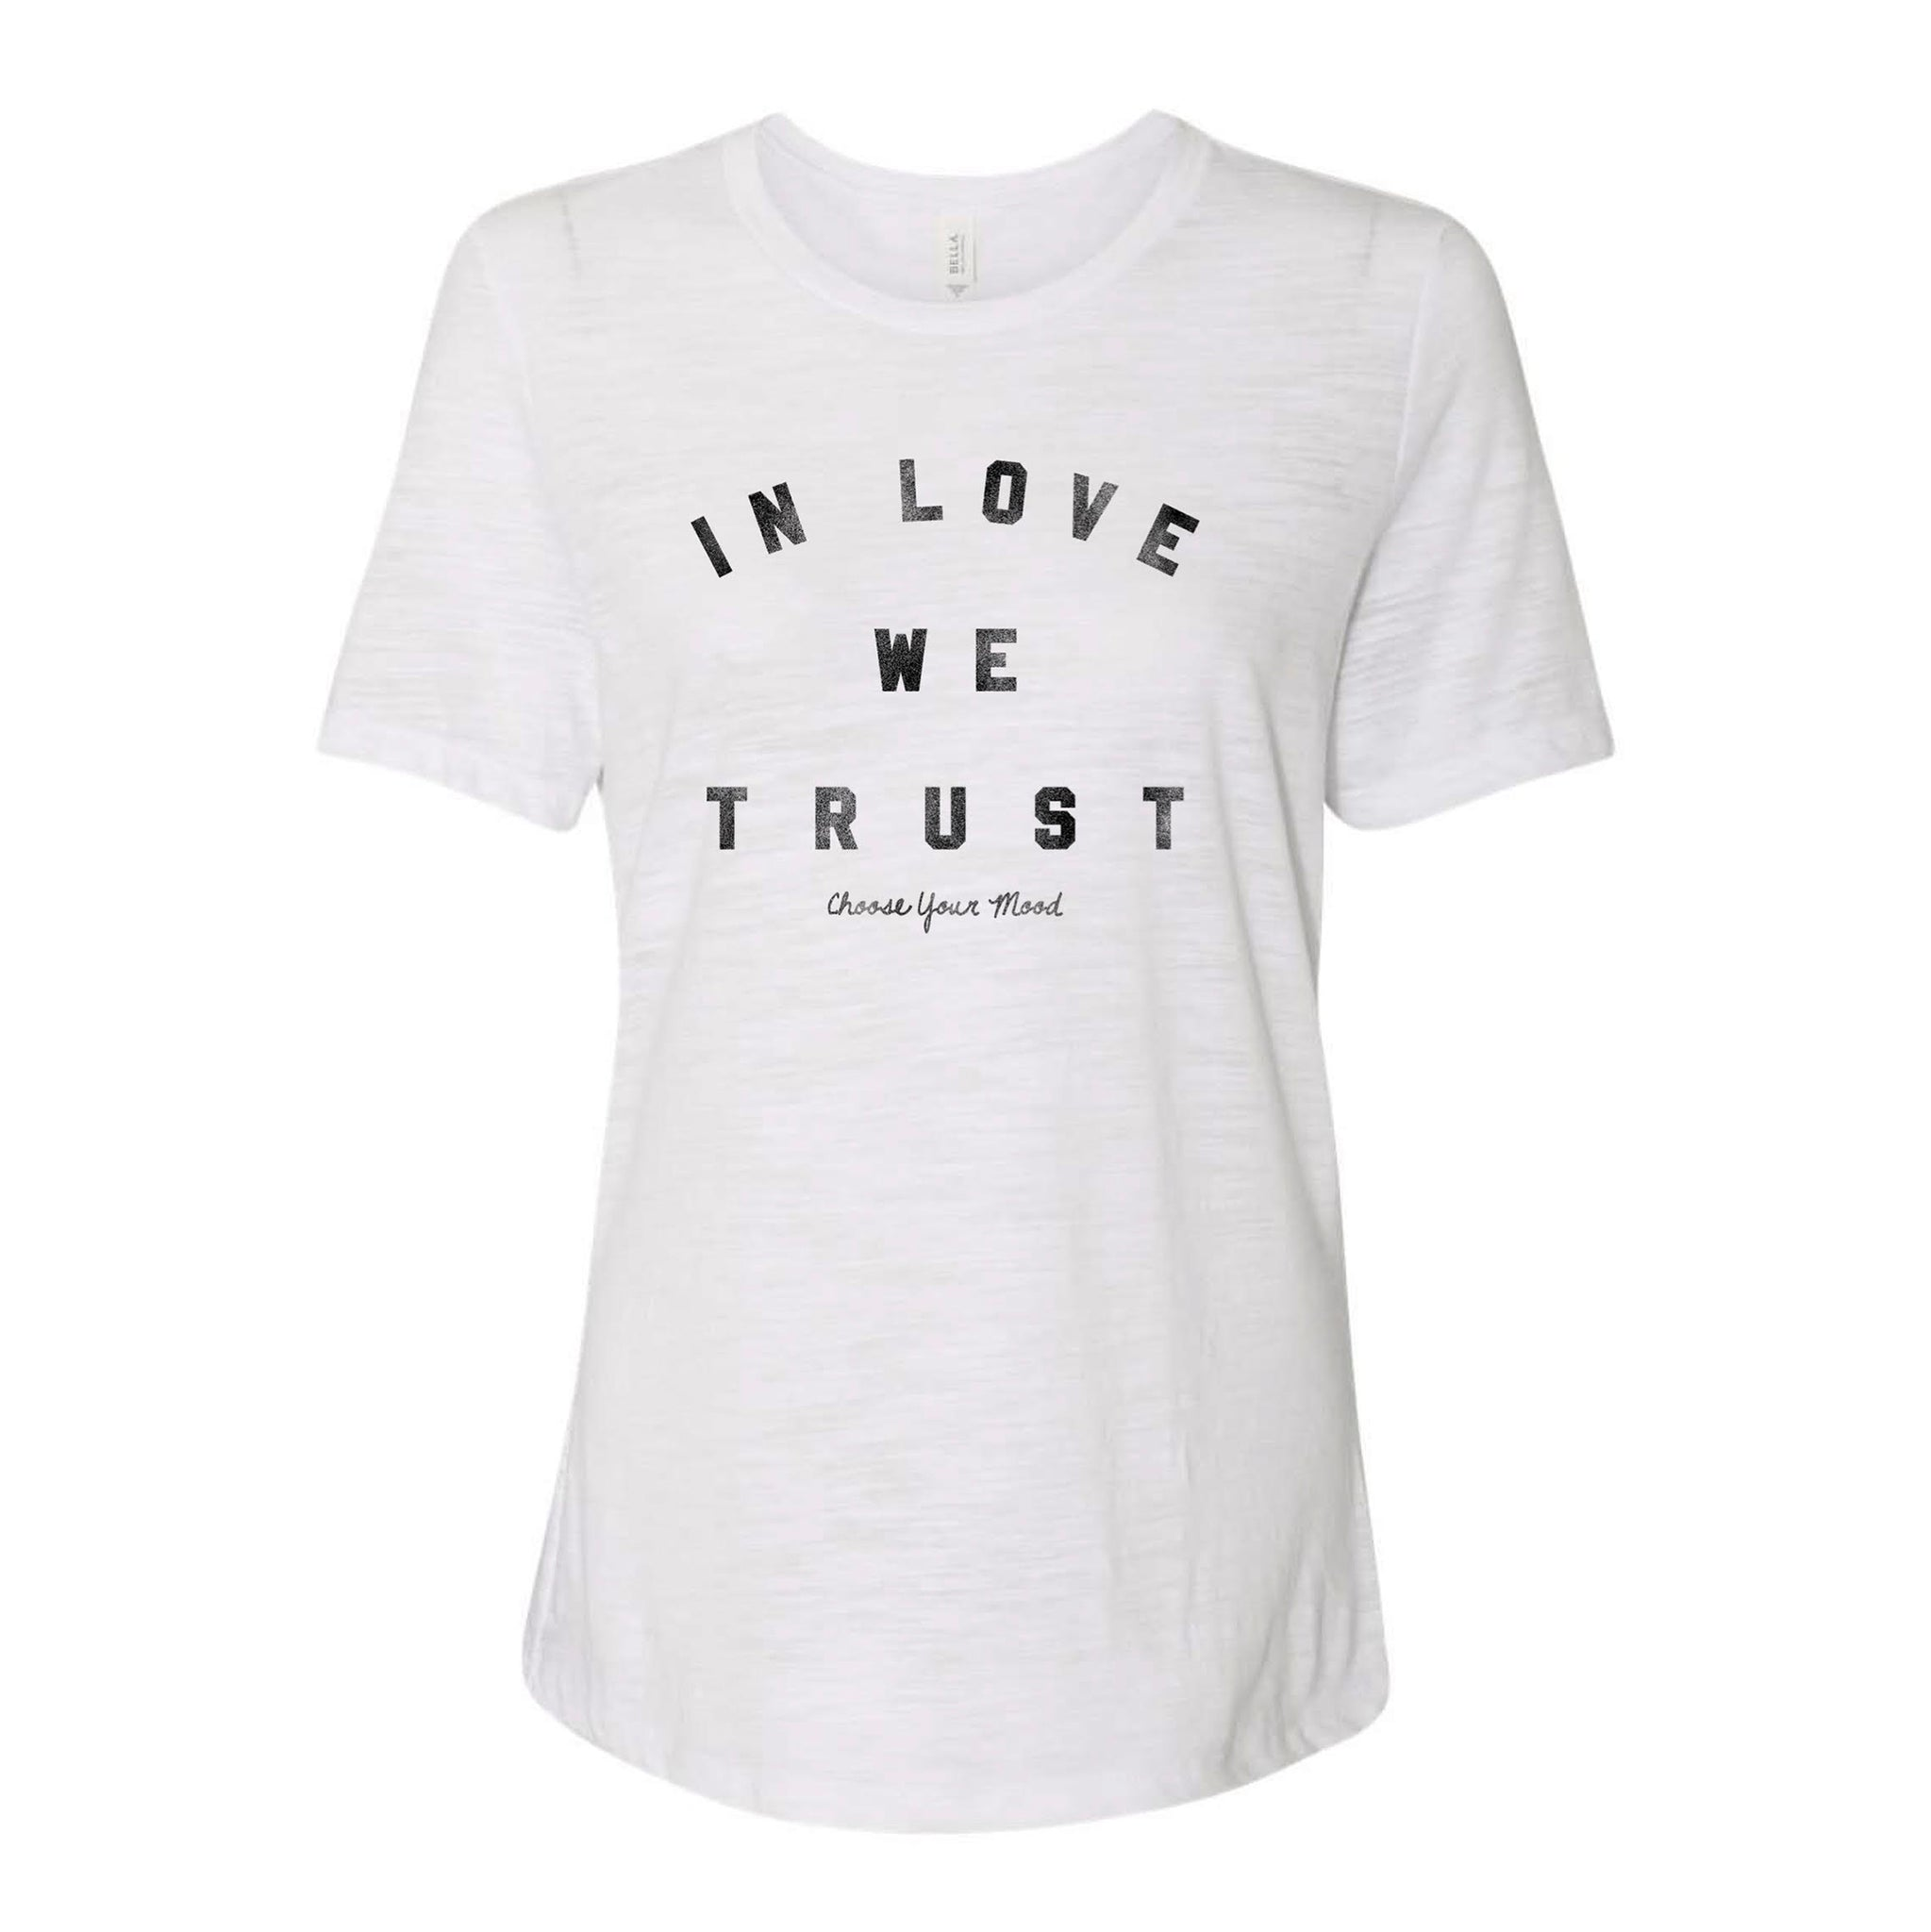 In Love We Trust vintage t-shirt